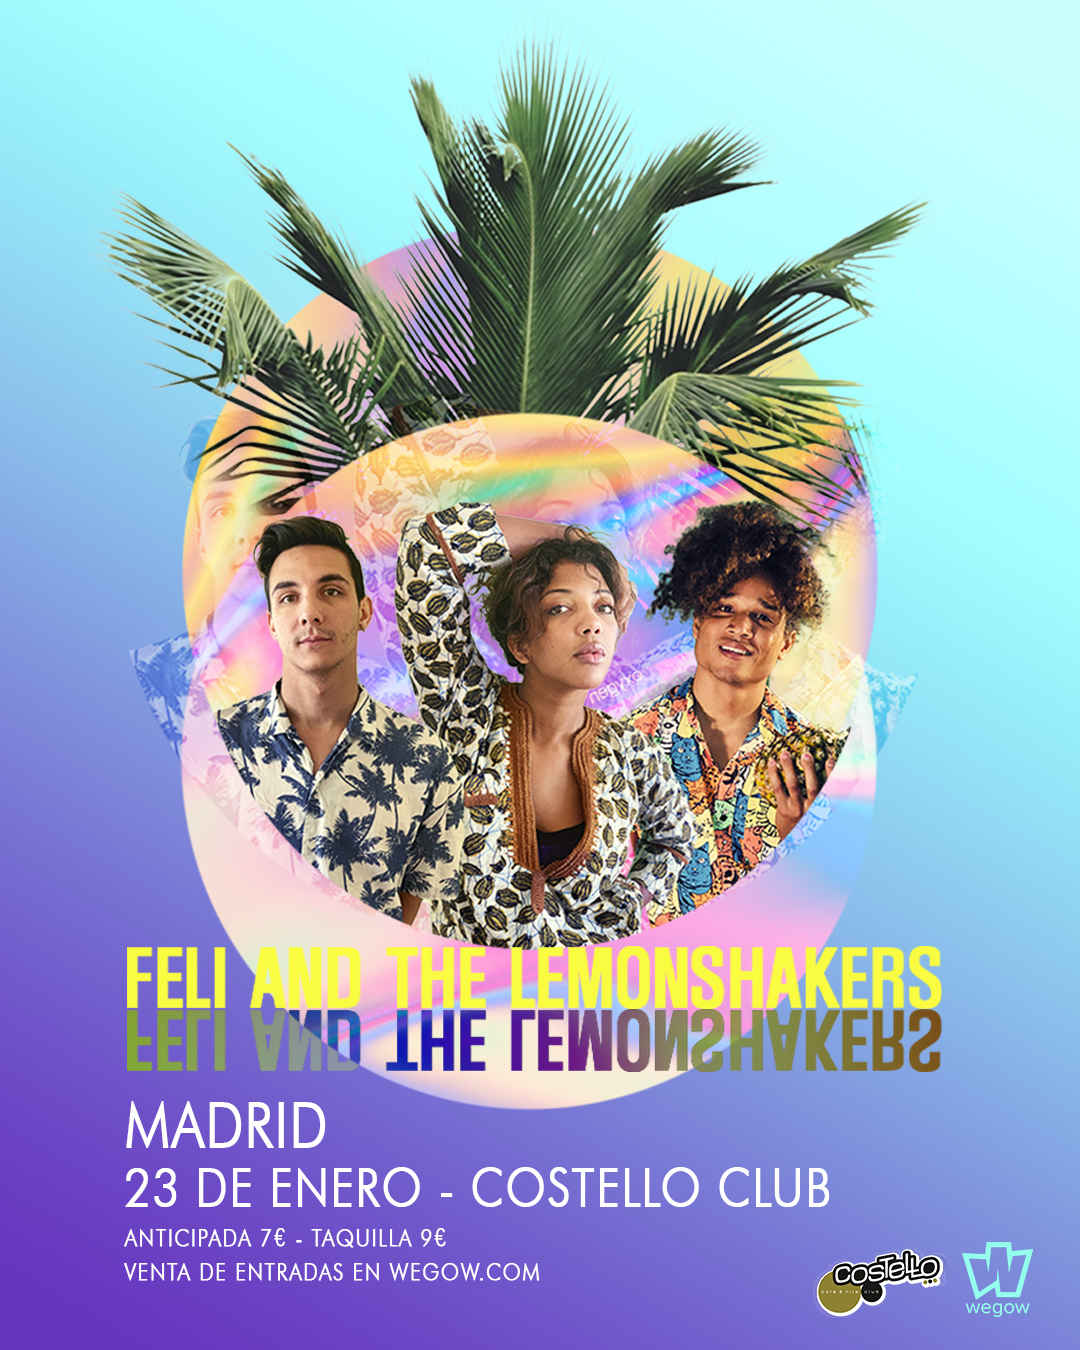 Feli and the LemonShakers